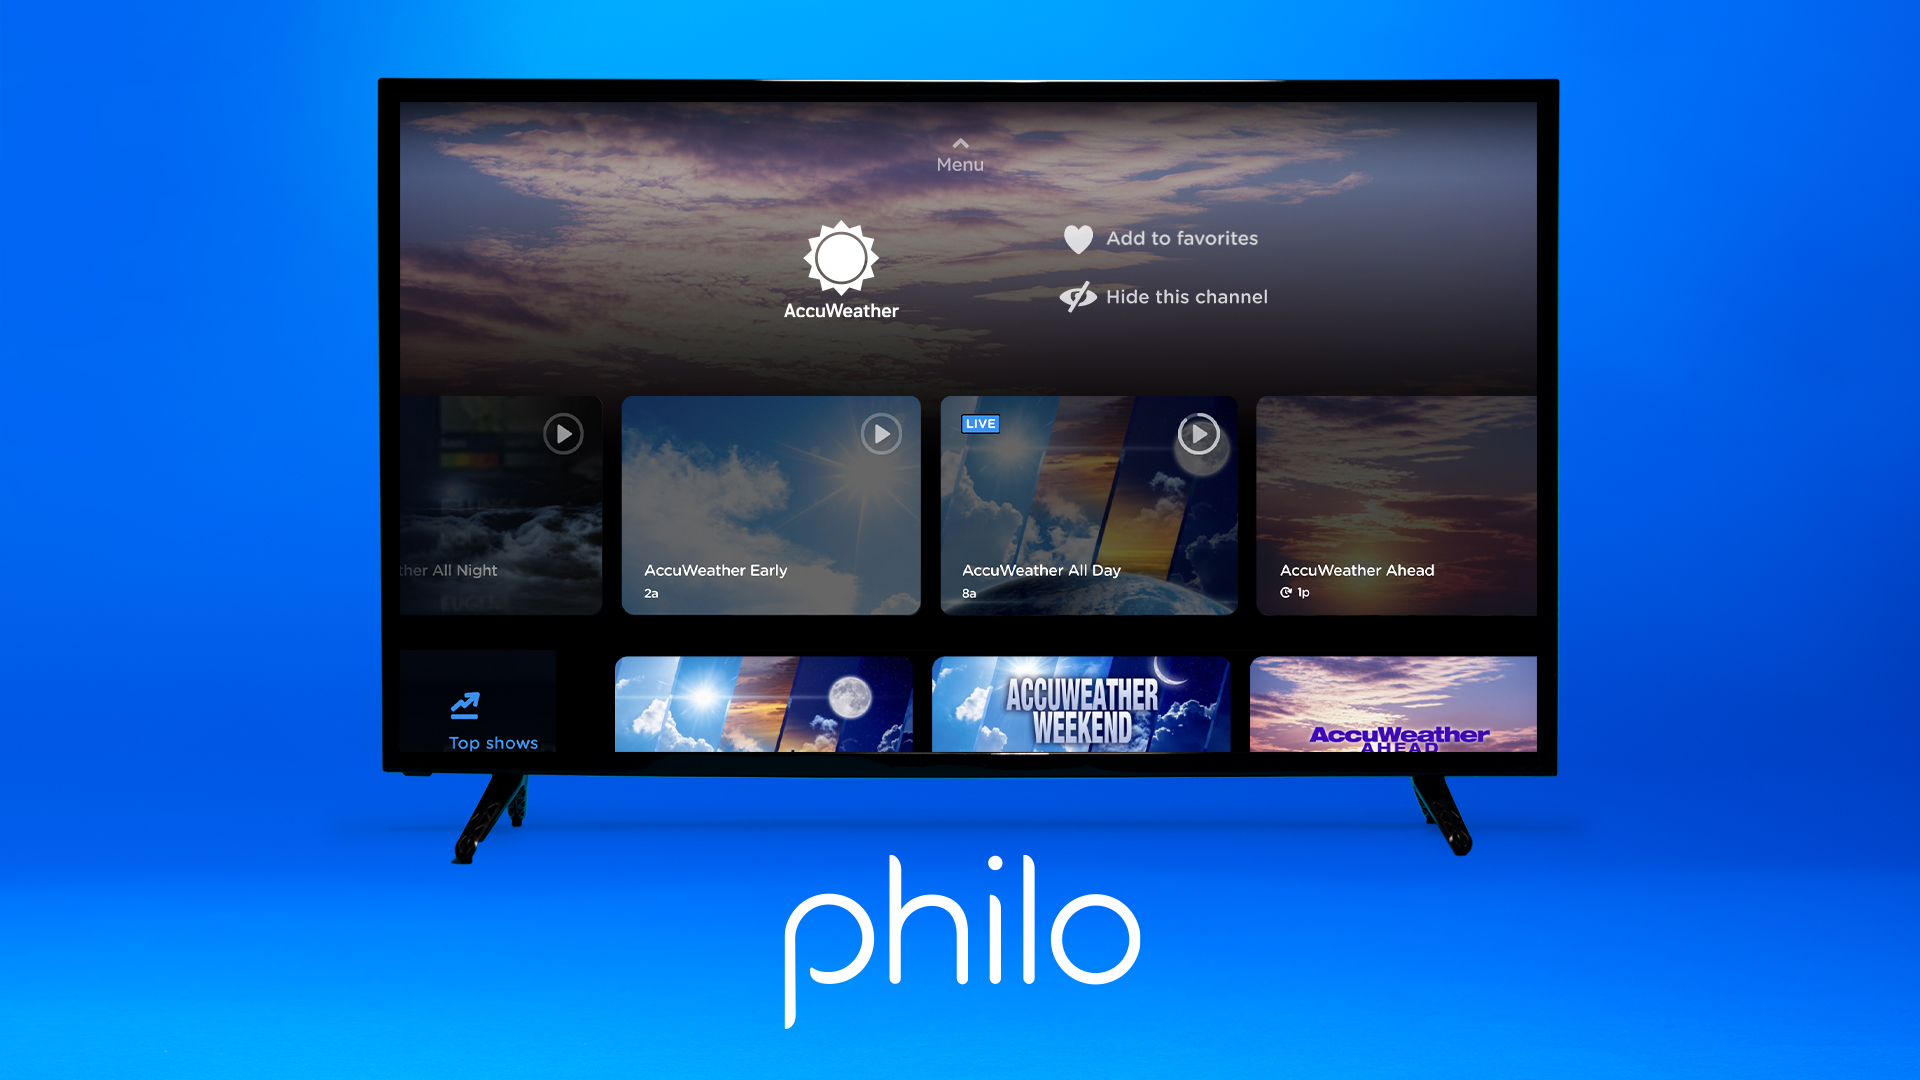 Philo Adds AccuWeather to Lineup